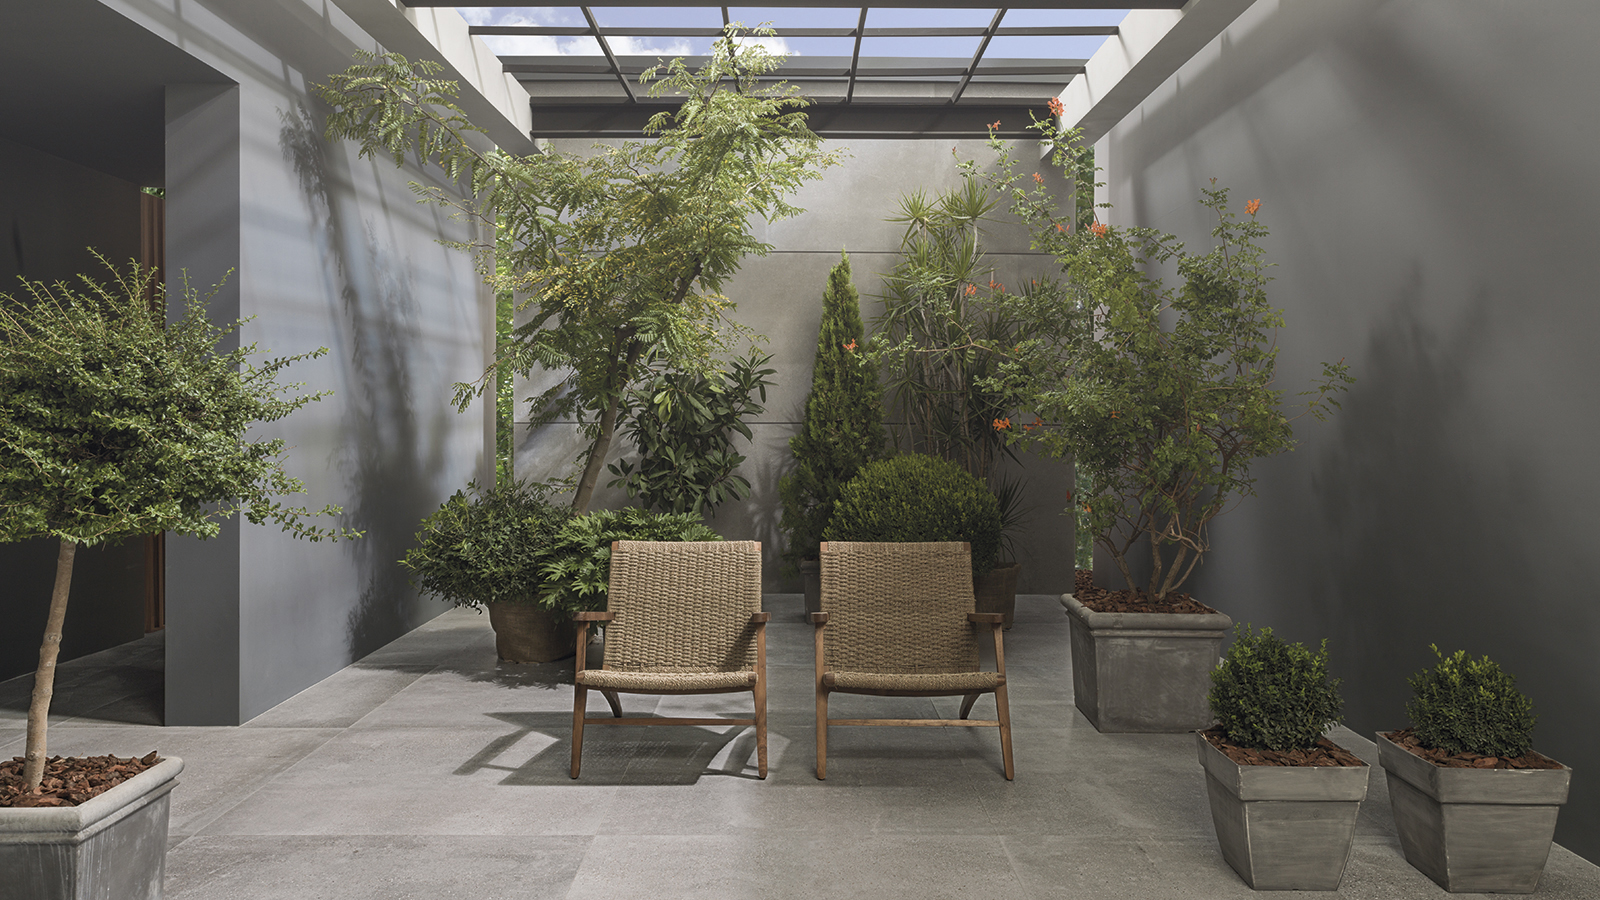 The Bottega collection by Porcelanosa: industrial style elegance